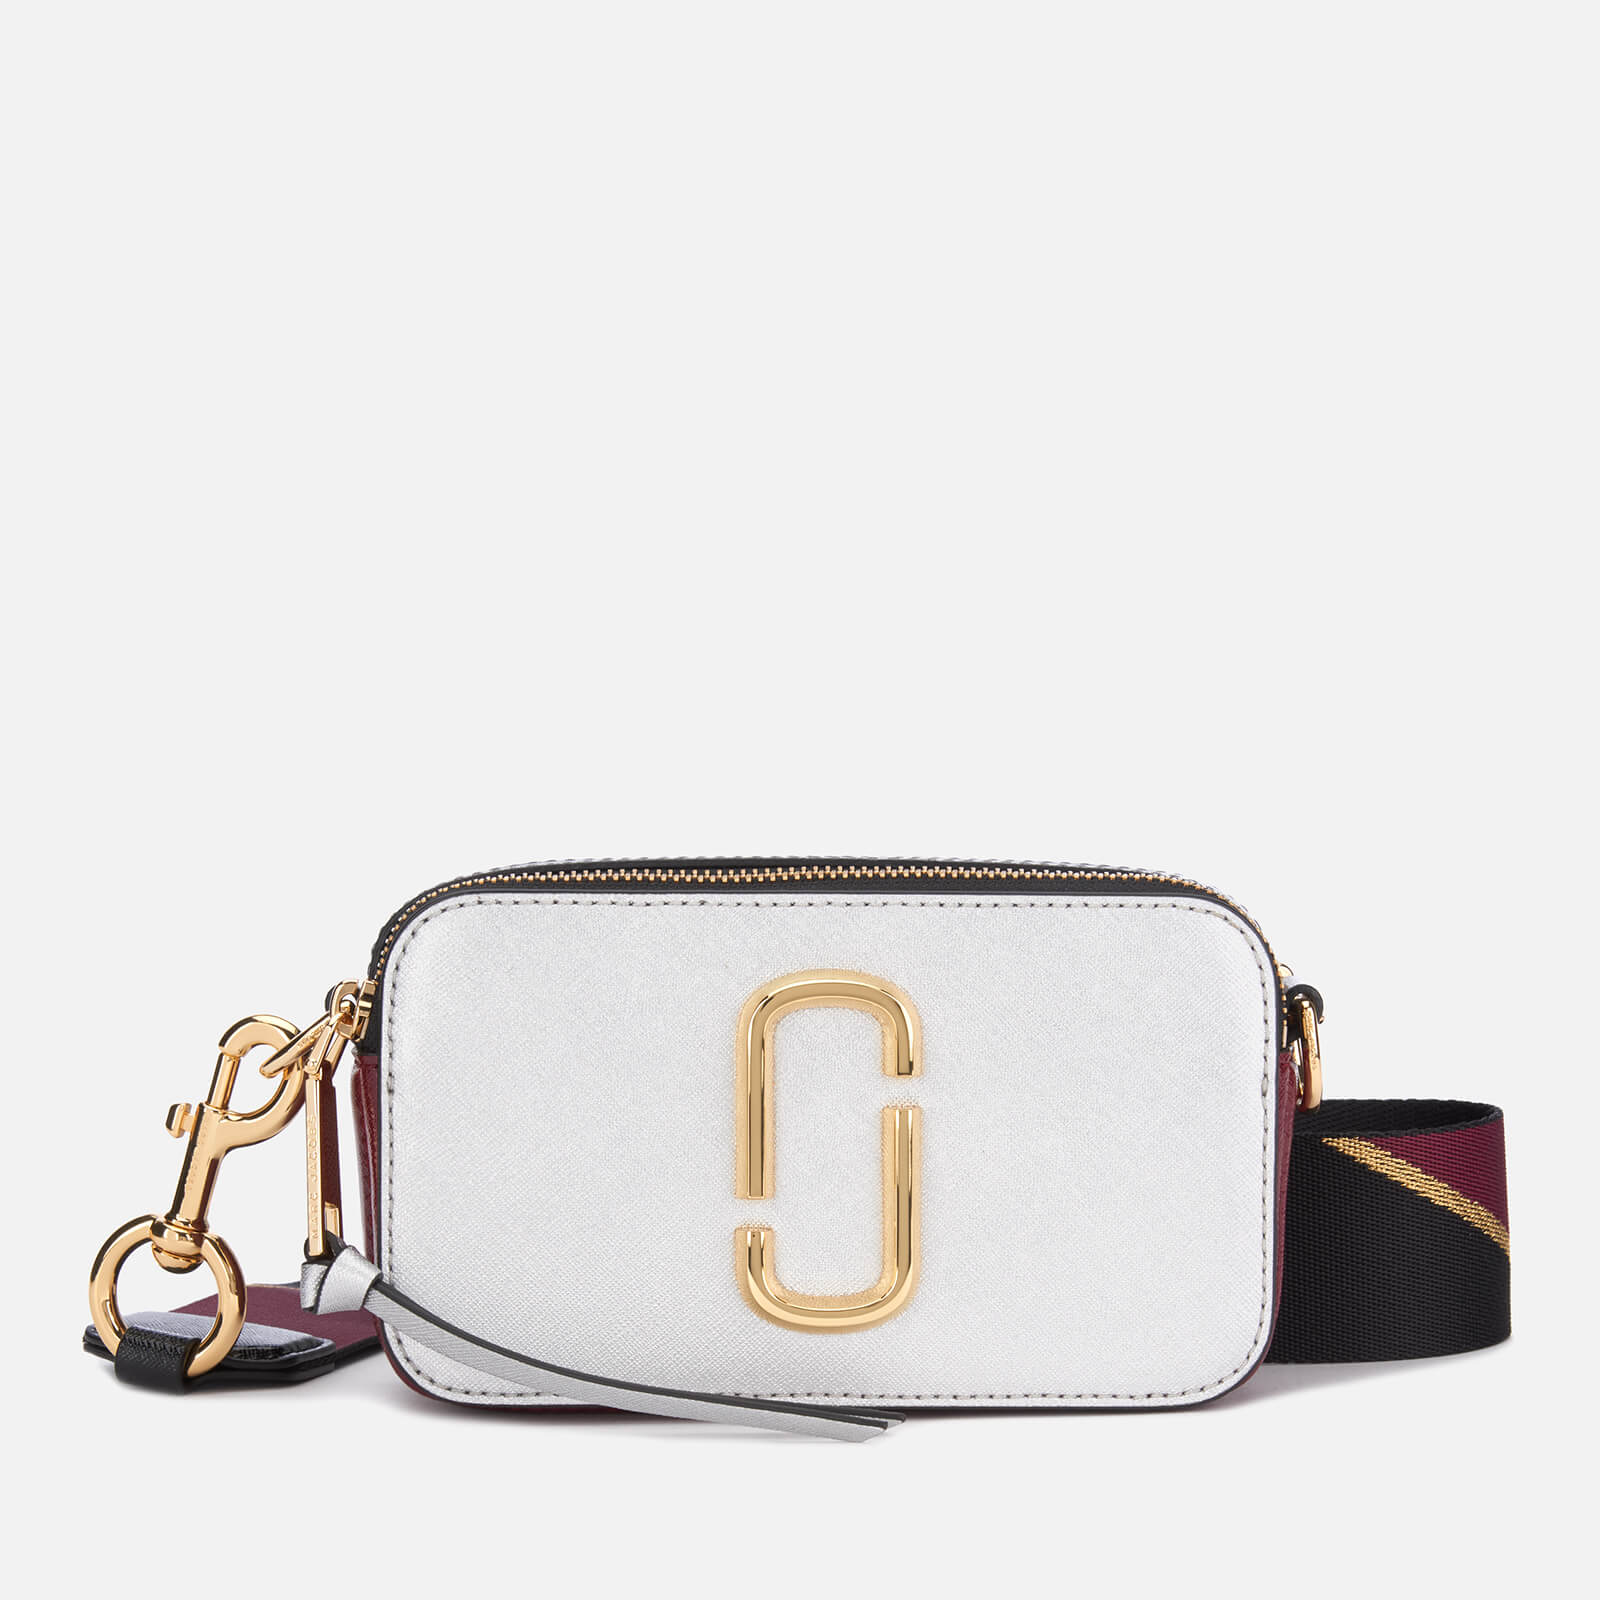 e46093183e30 Marc Jacobs Women s Snapshot Cross Body Bag - Silver Multi - Free UK  Delivery over £50